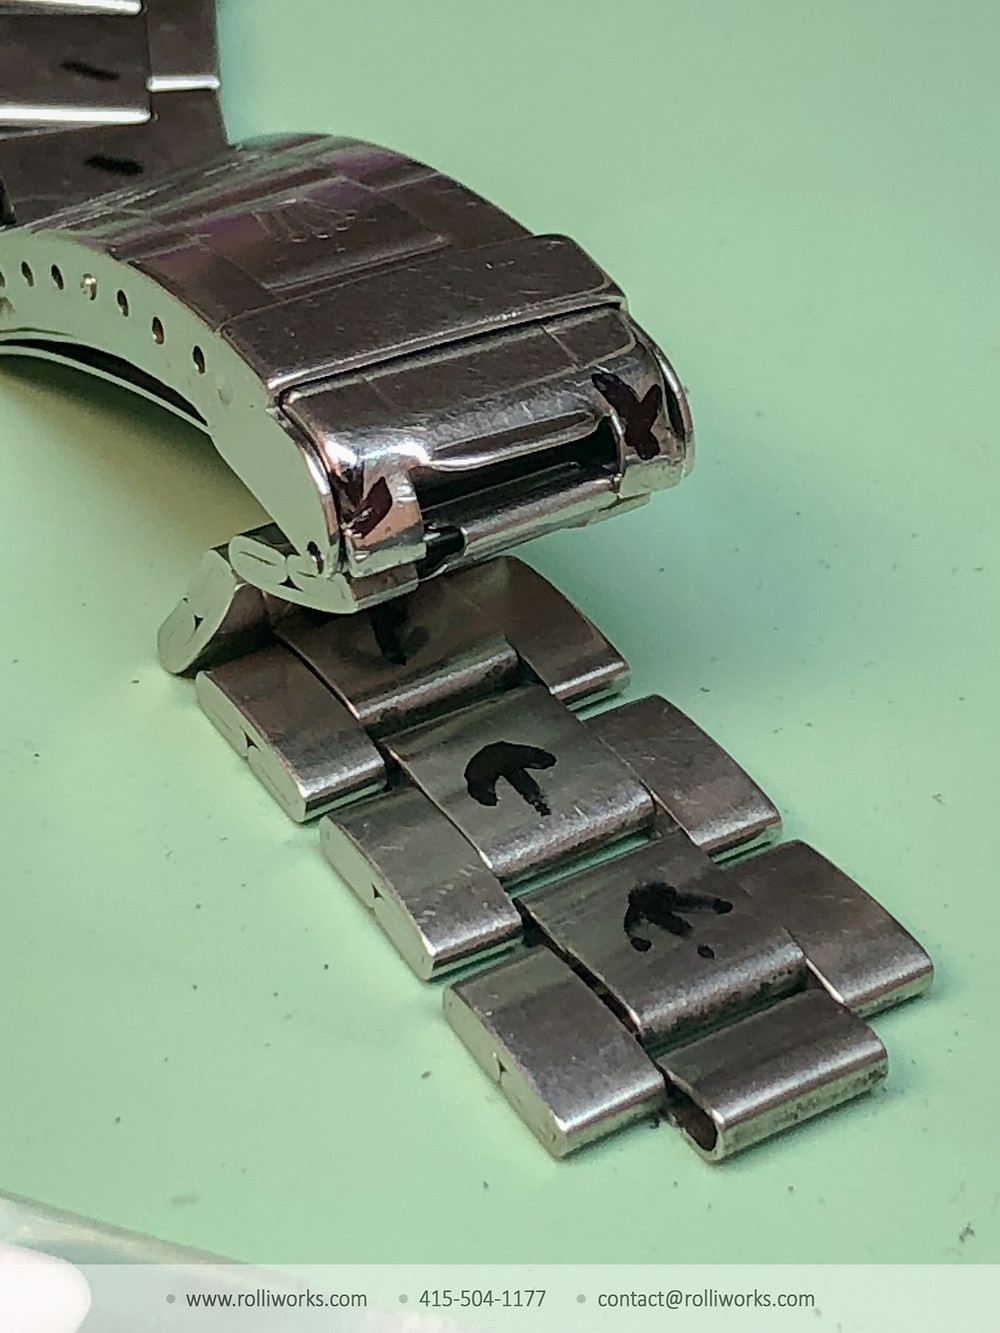 Rolex Band Repair Rolliworks 9315 Oyster